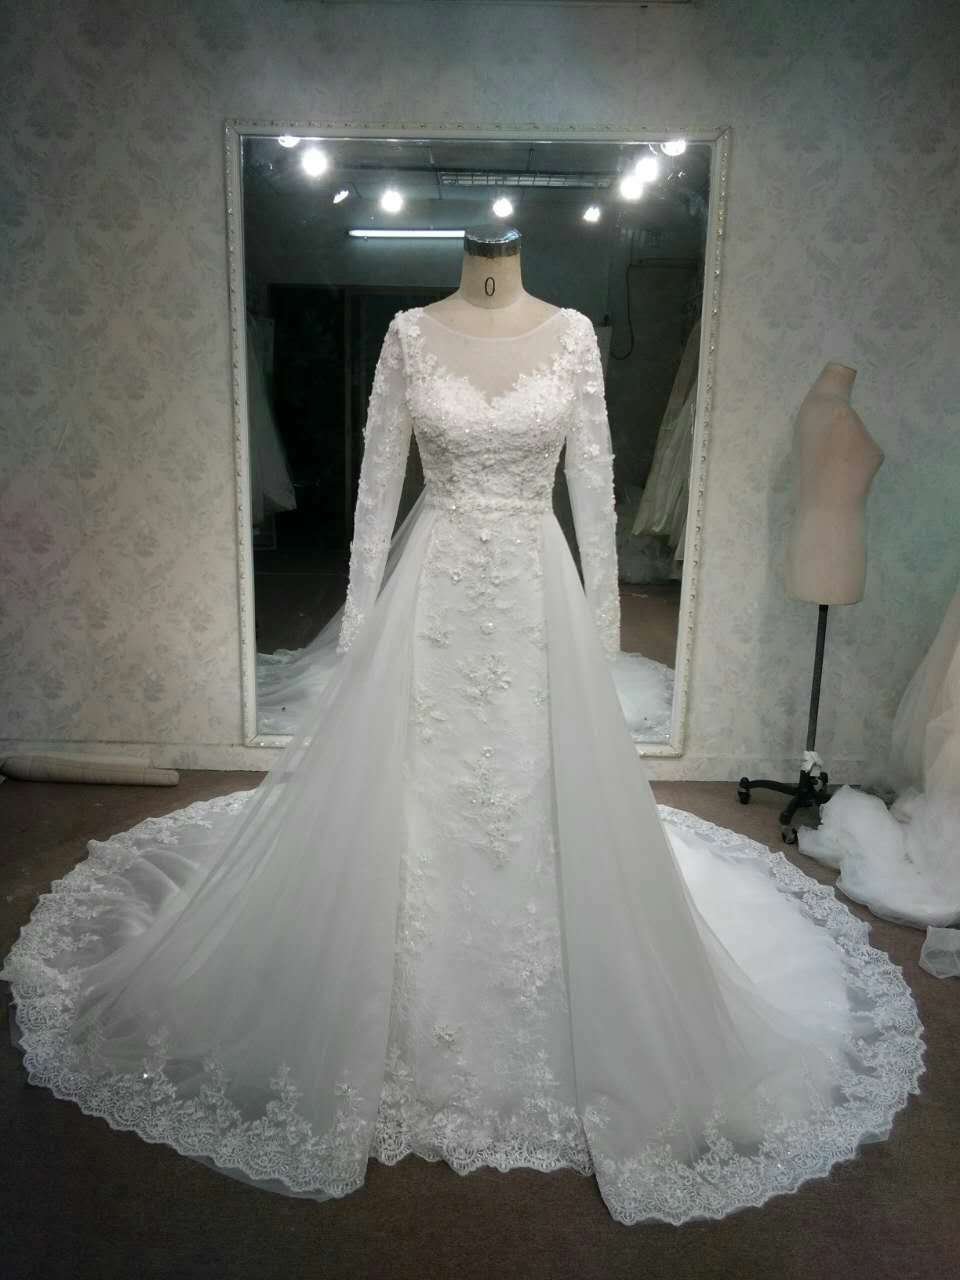 Lace overskirt wedding gowns with long sleeves by darius for Wedding dress with overskirt